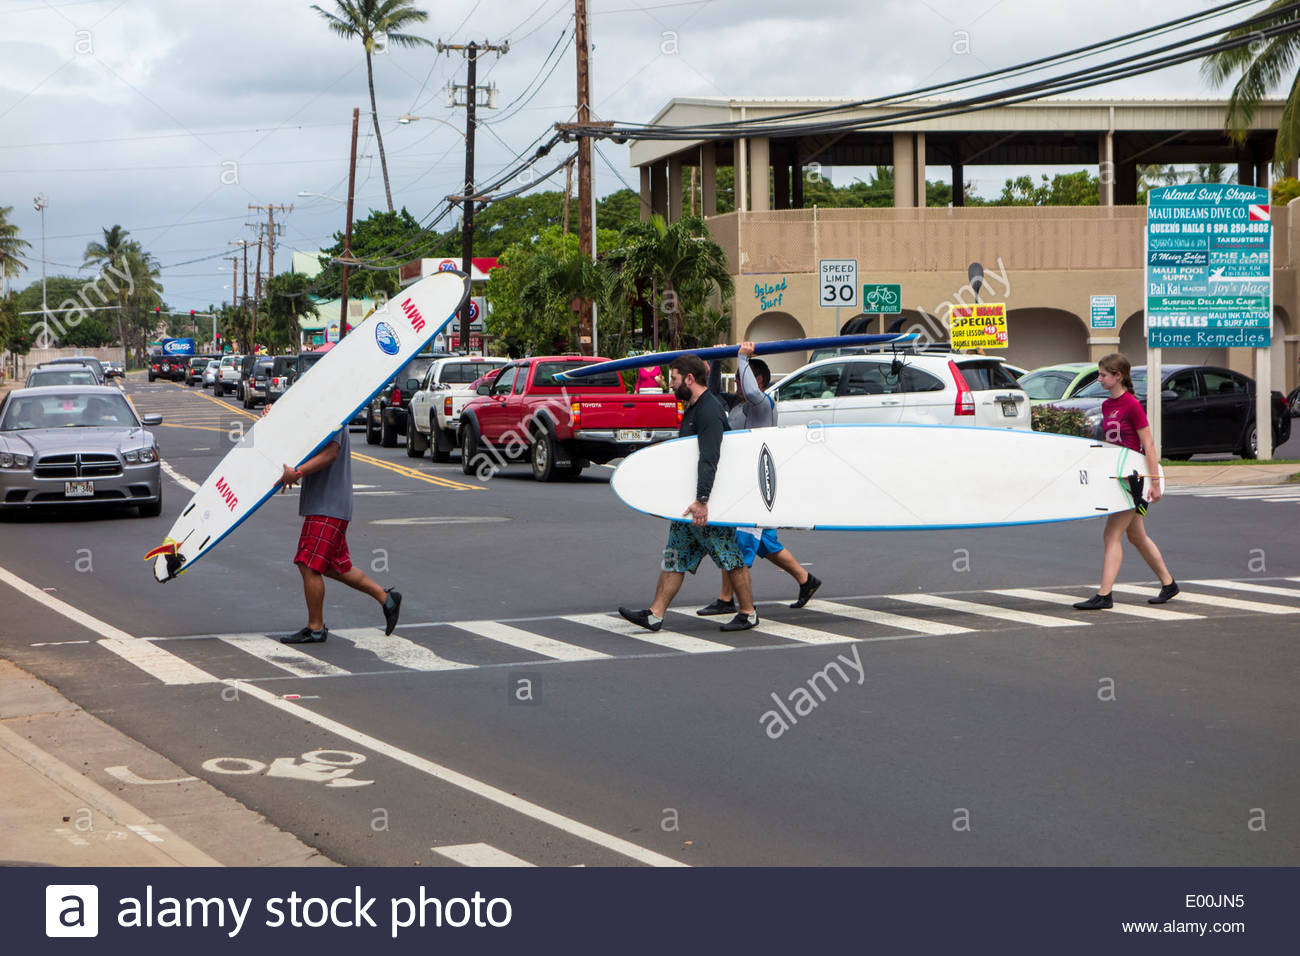 traffic-stops-for-surfboards-crossing-st